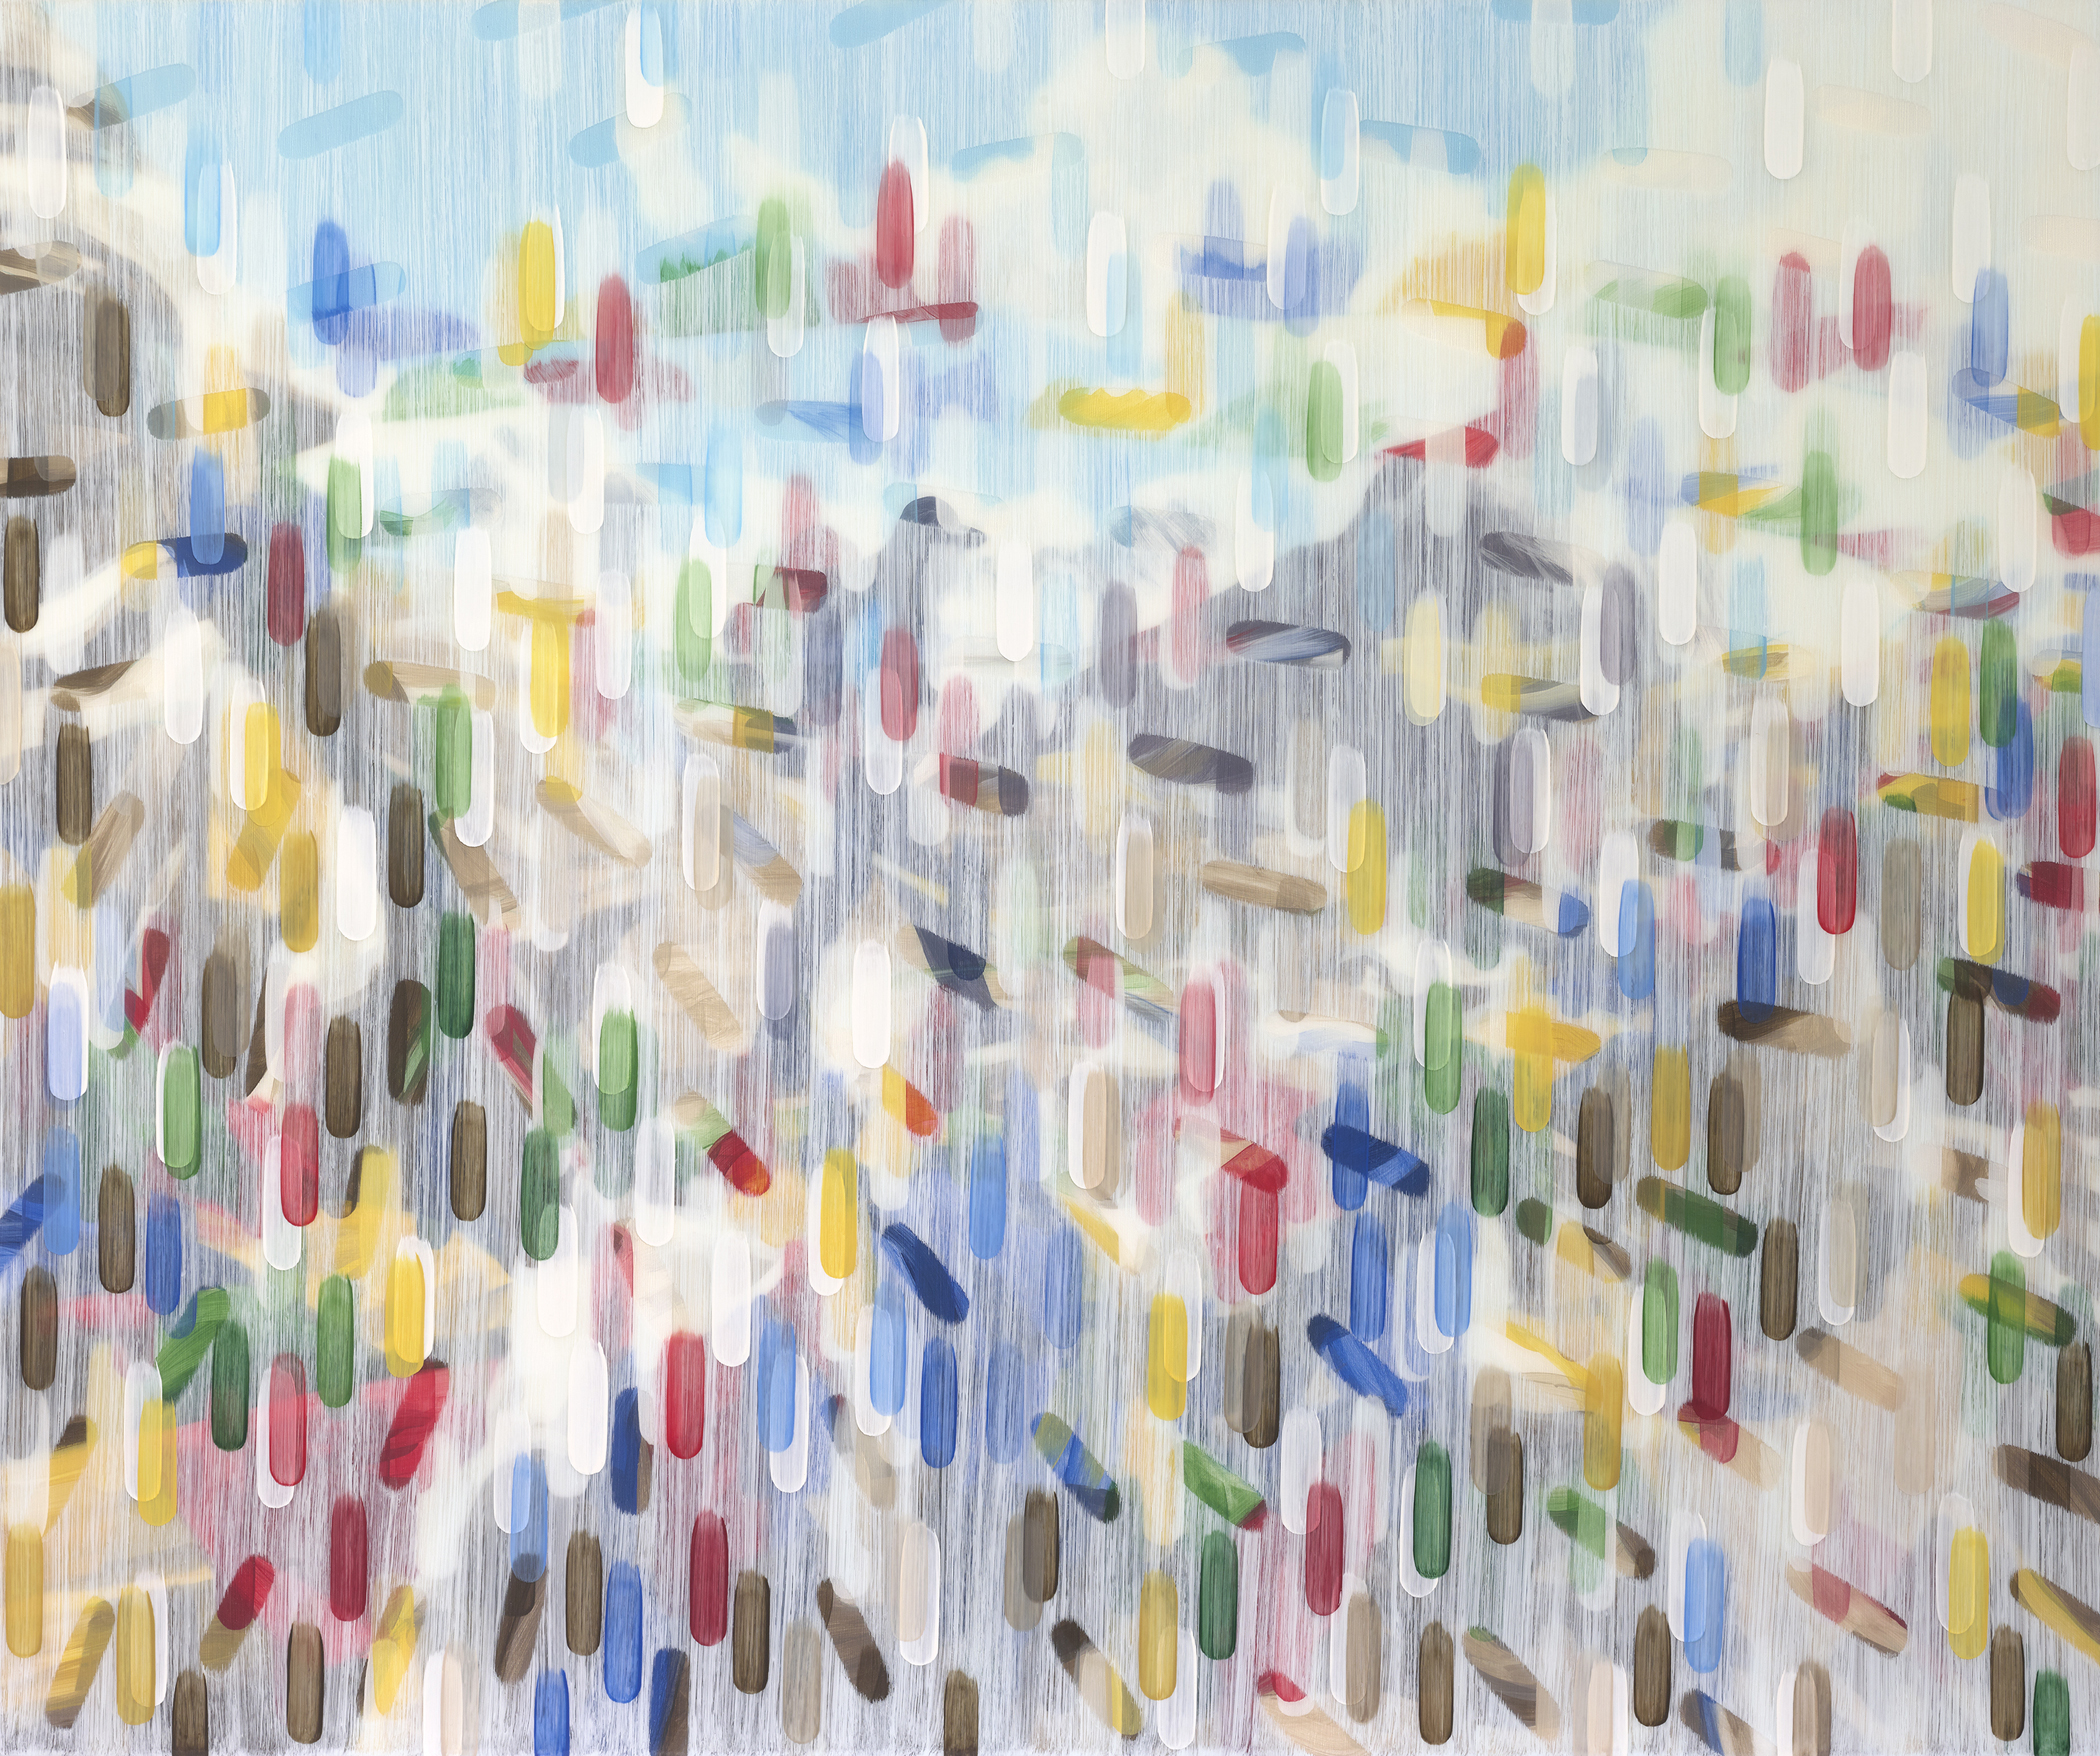 Prayer Flags 2017 acrylic on canvas on board 50x60in